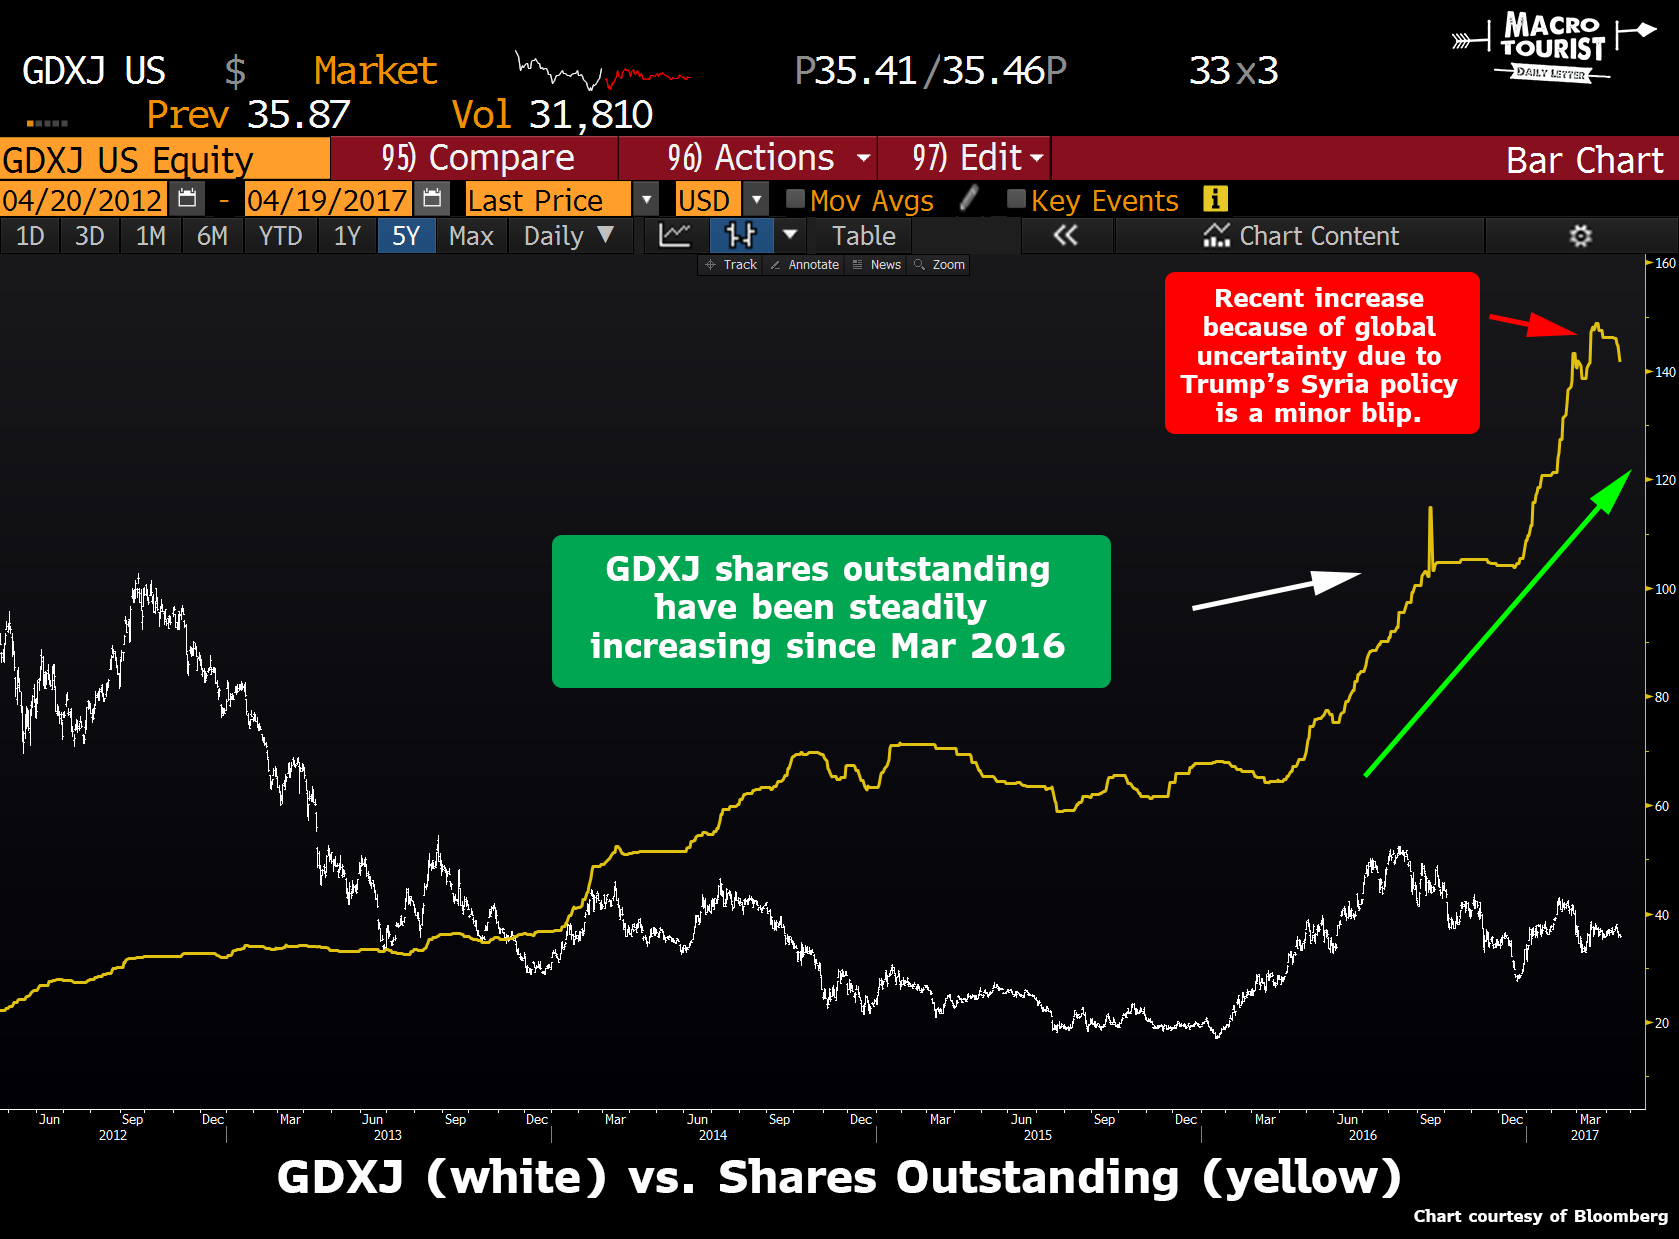 GDXJ vs Share Outstanding